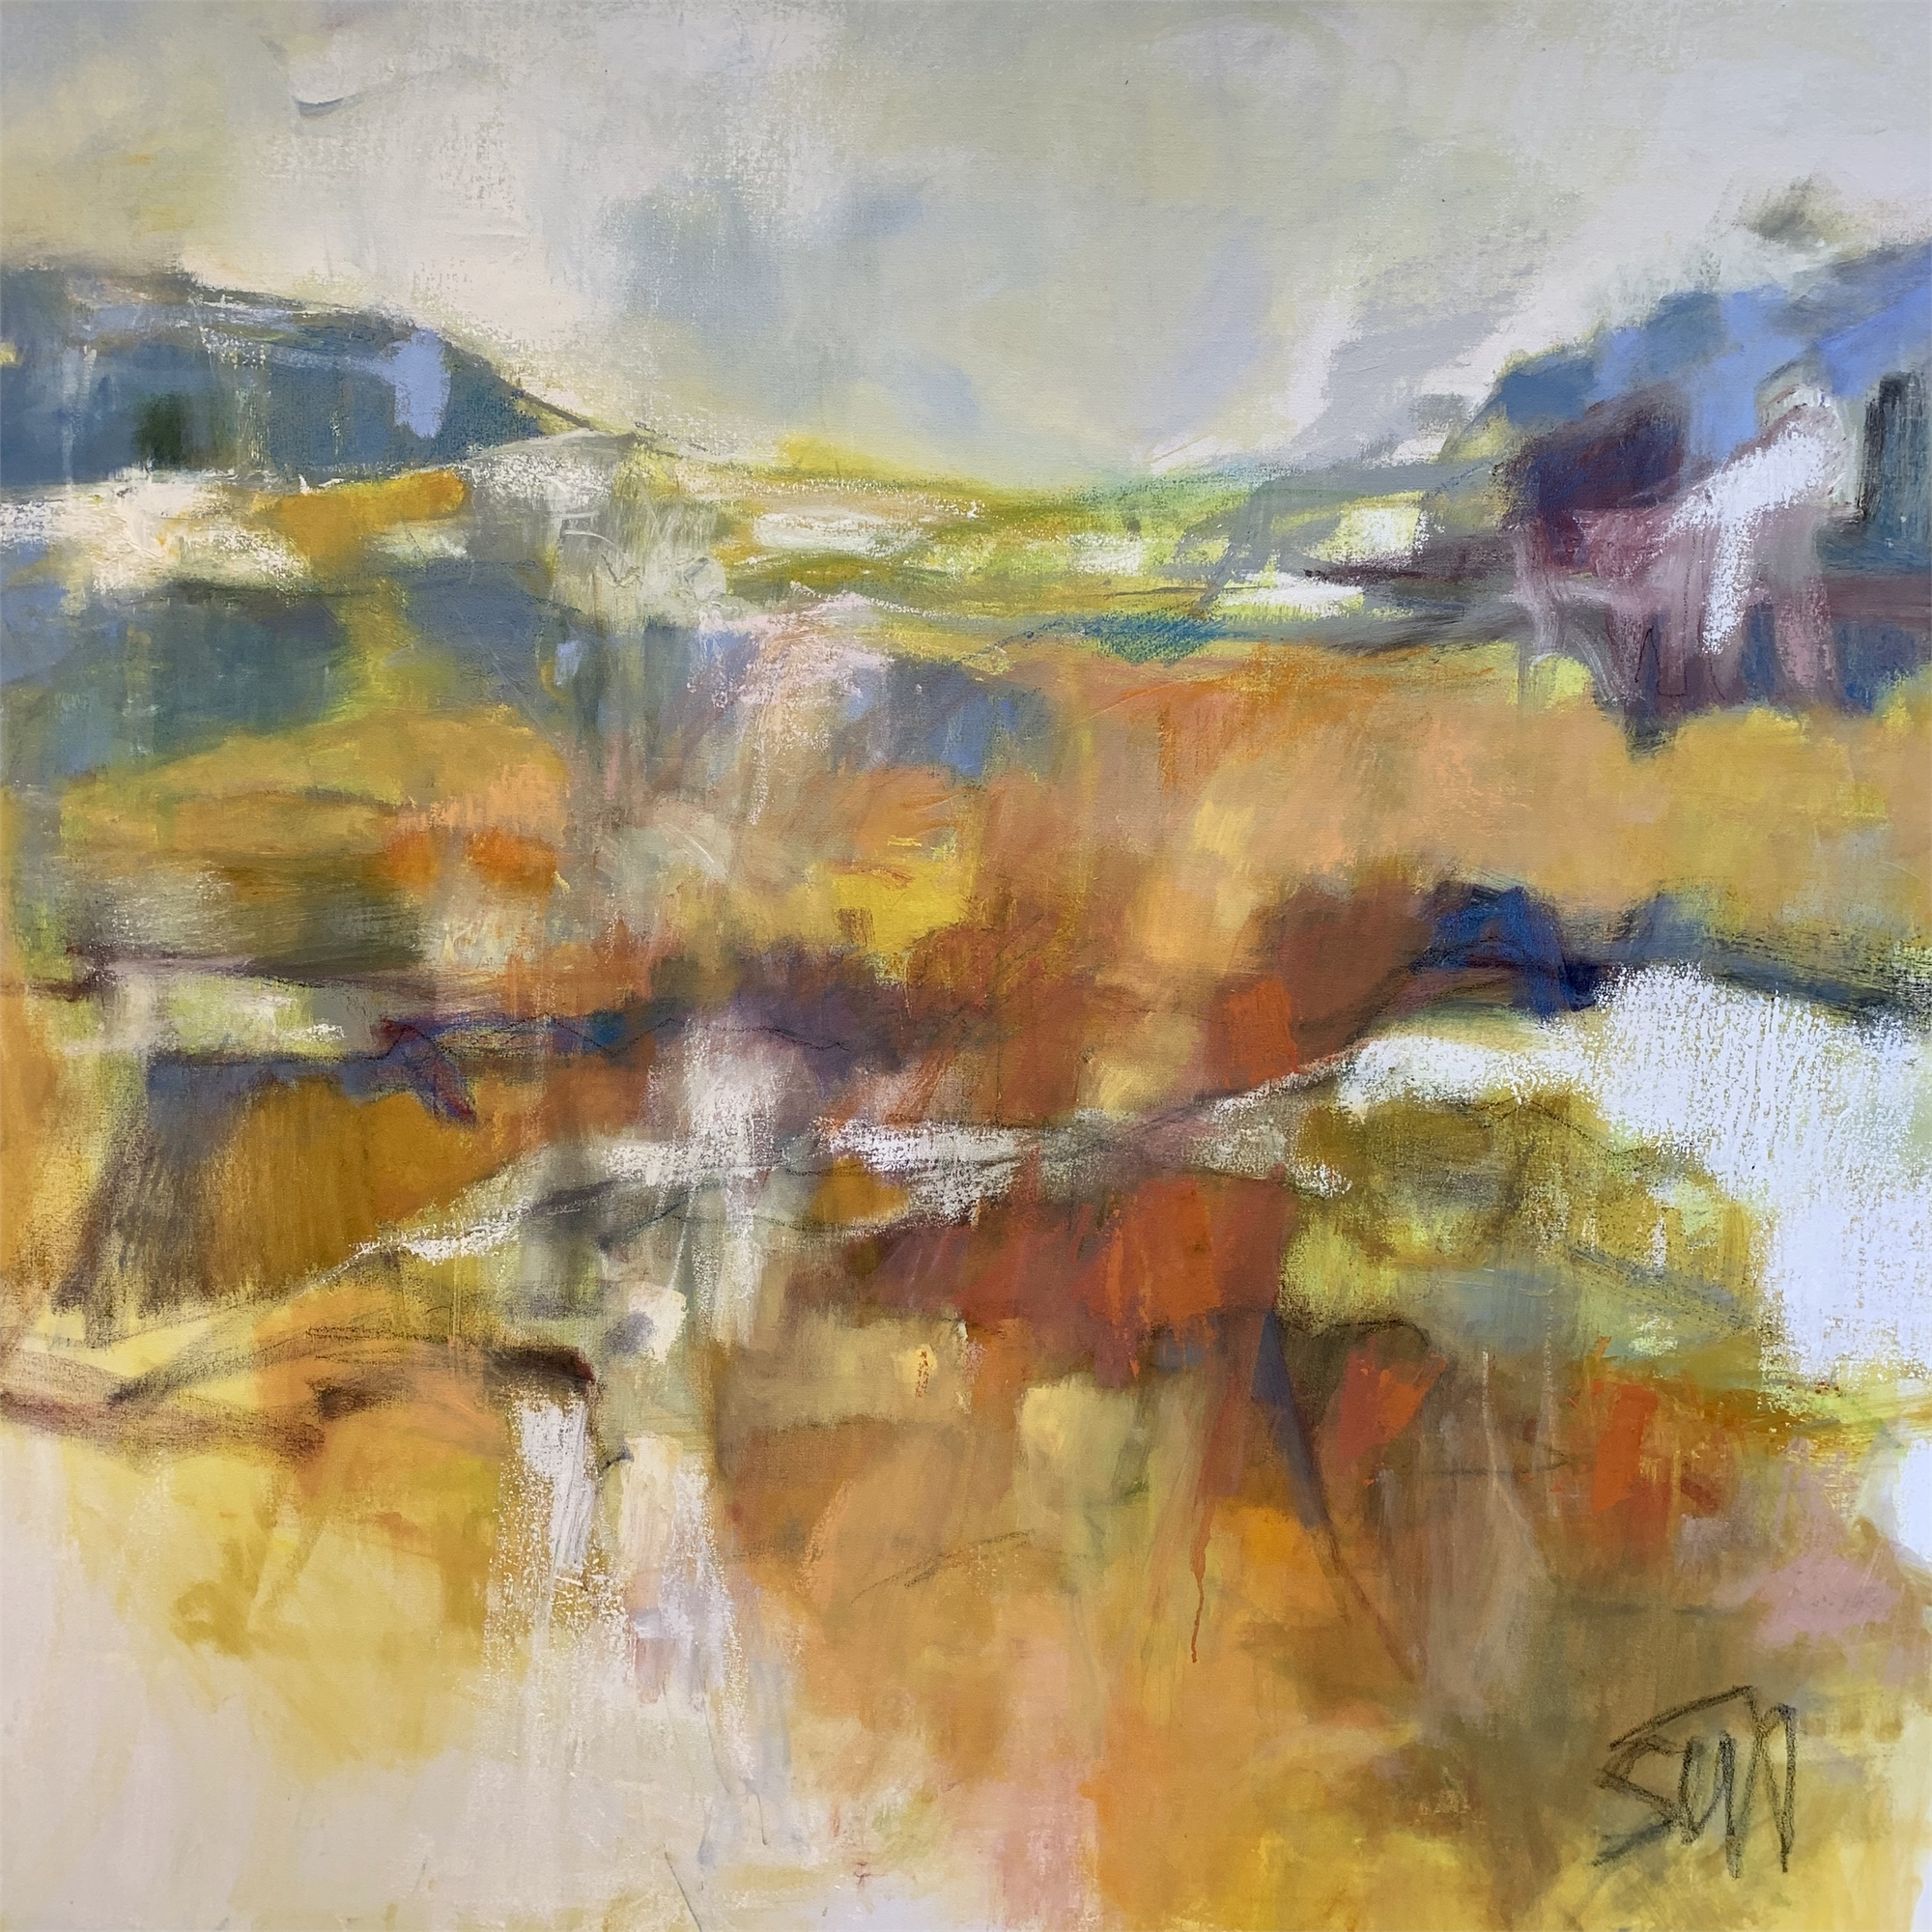 The Layers of Time by Susan Altman